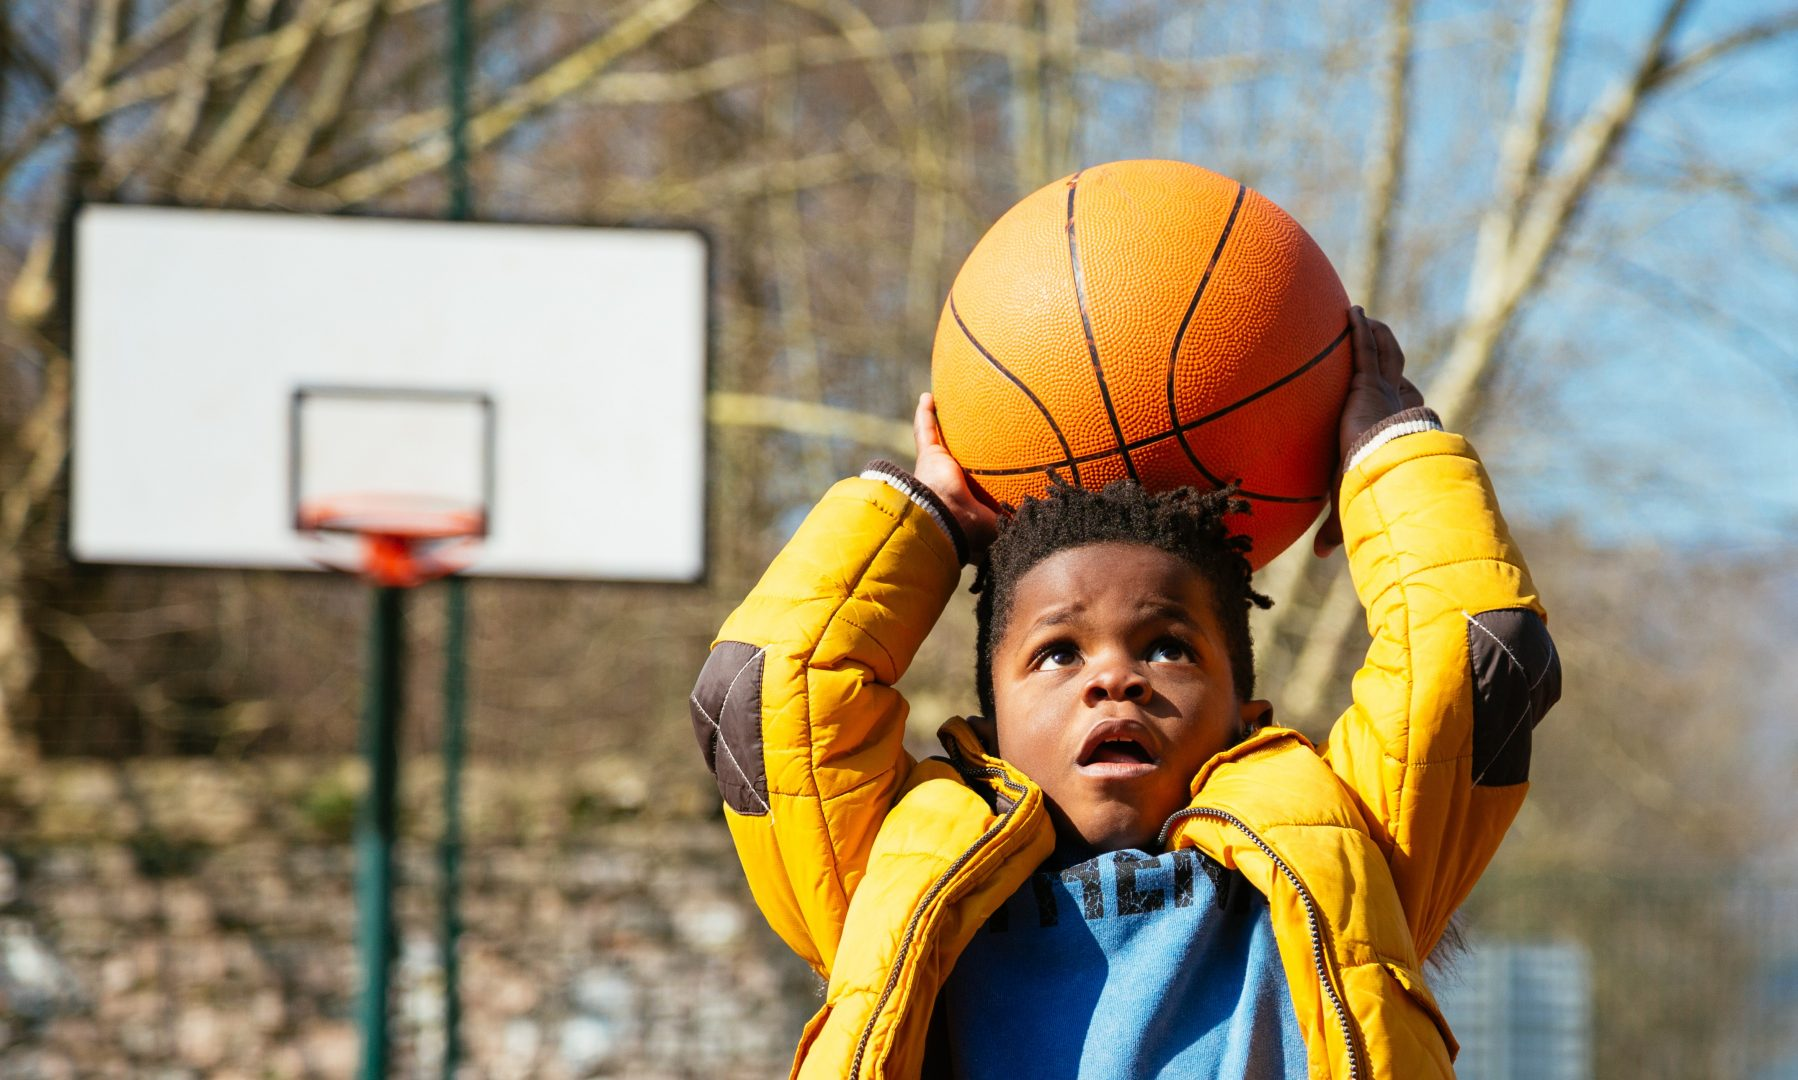 African American little boy basketball player shooting a basketball at a playground